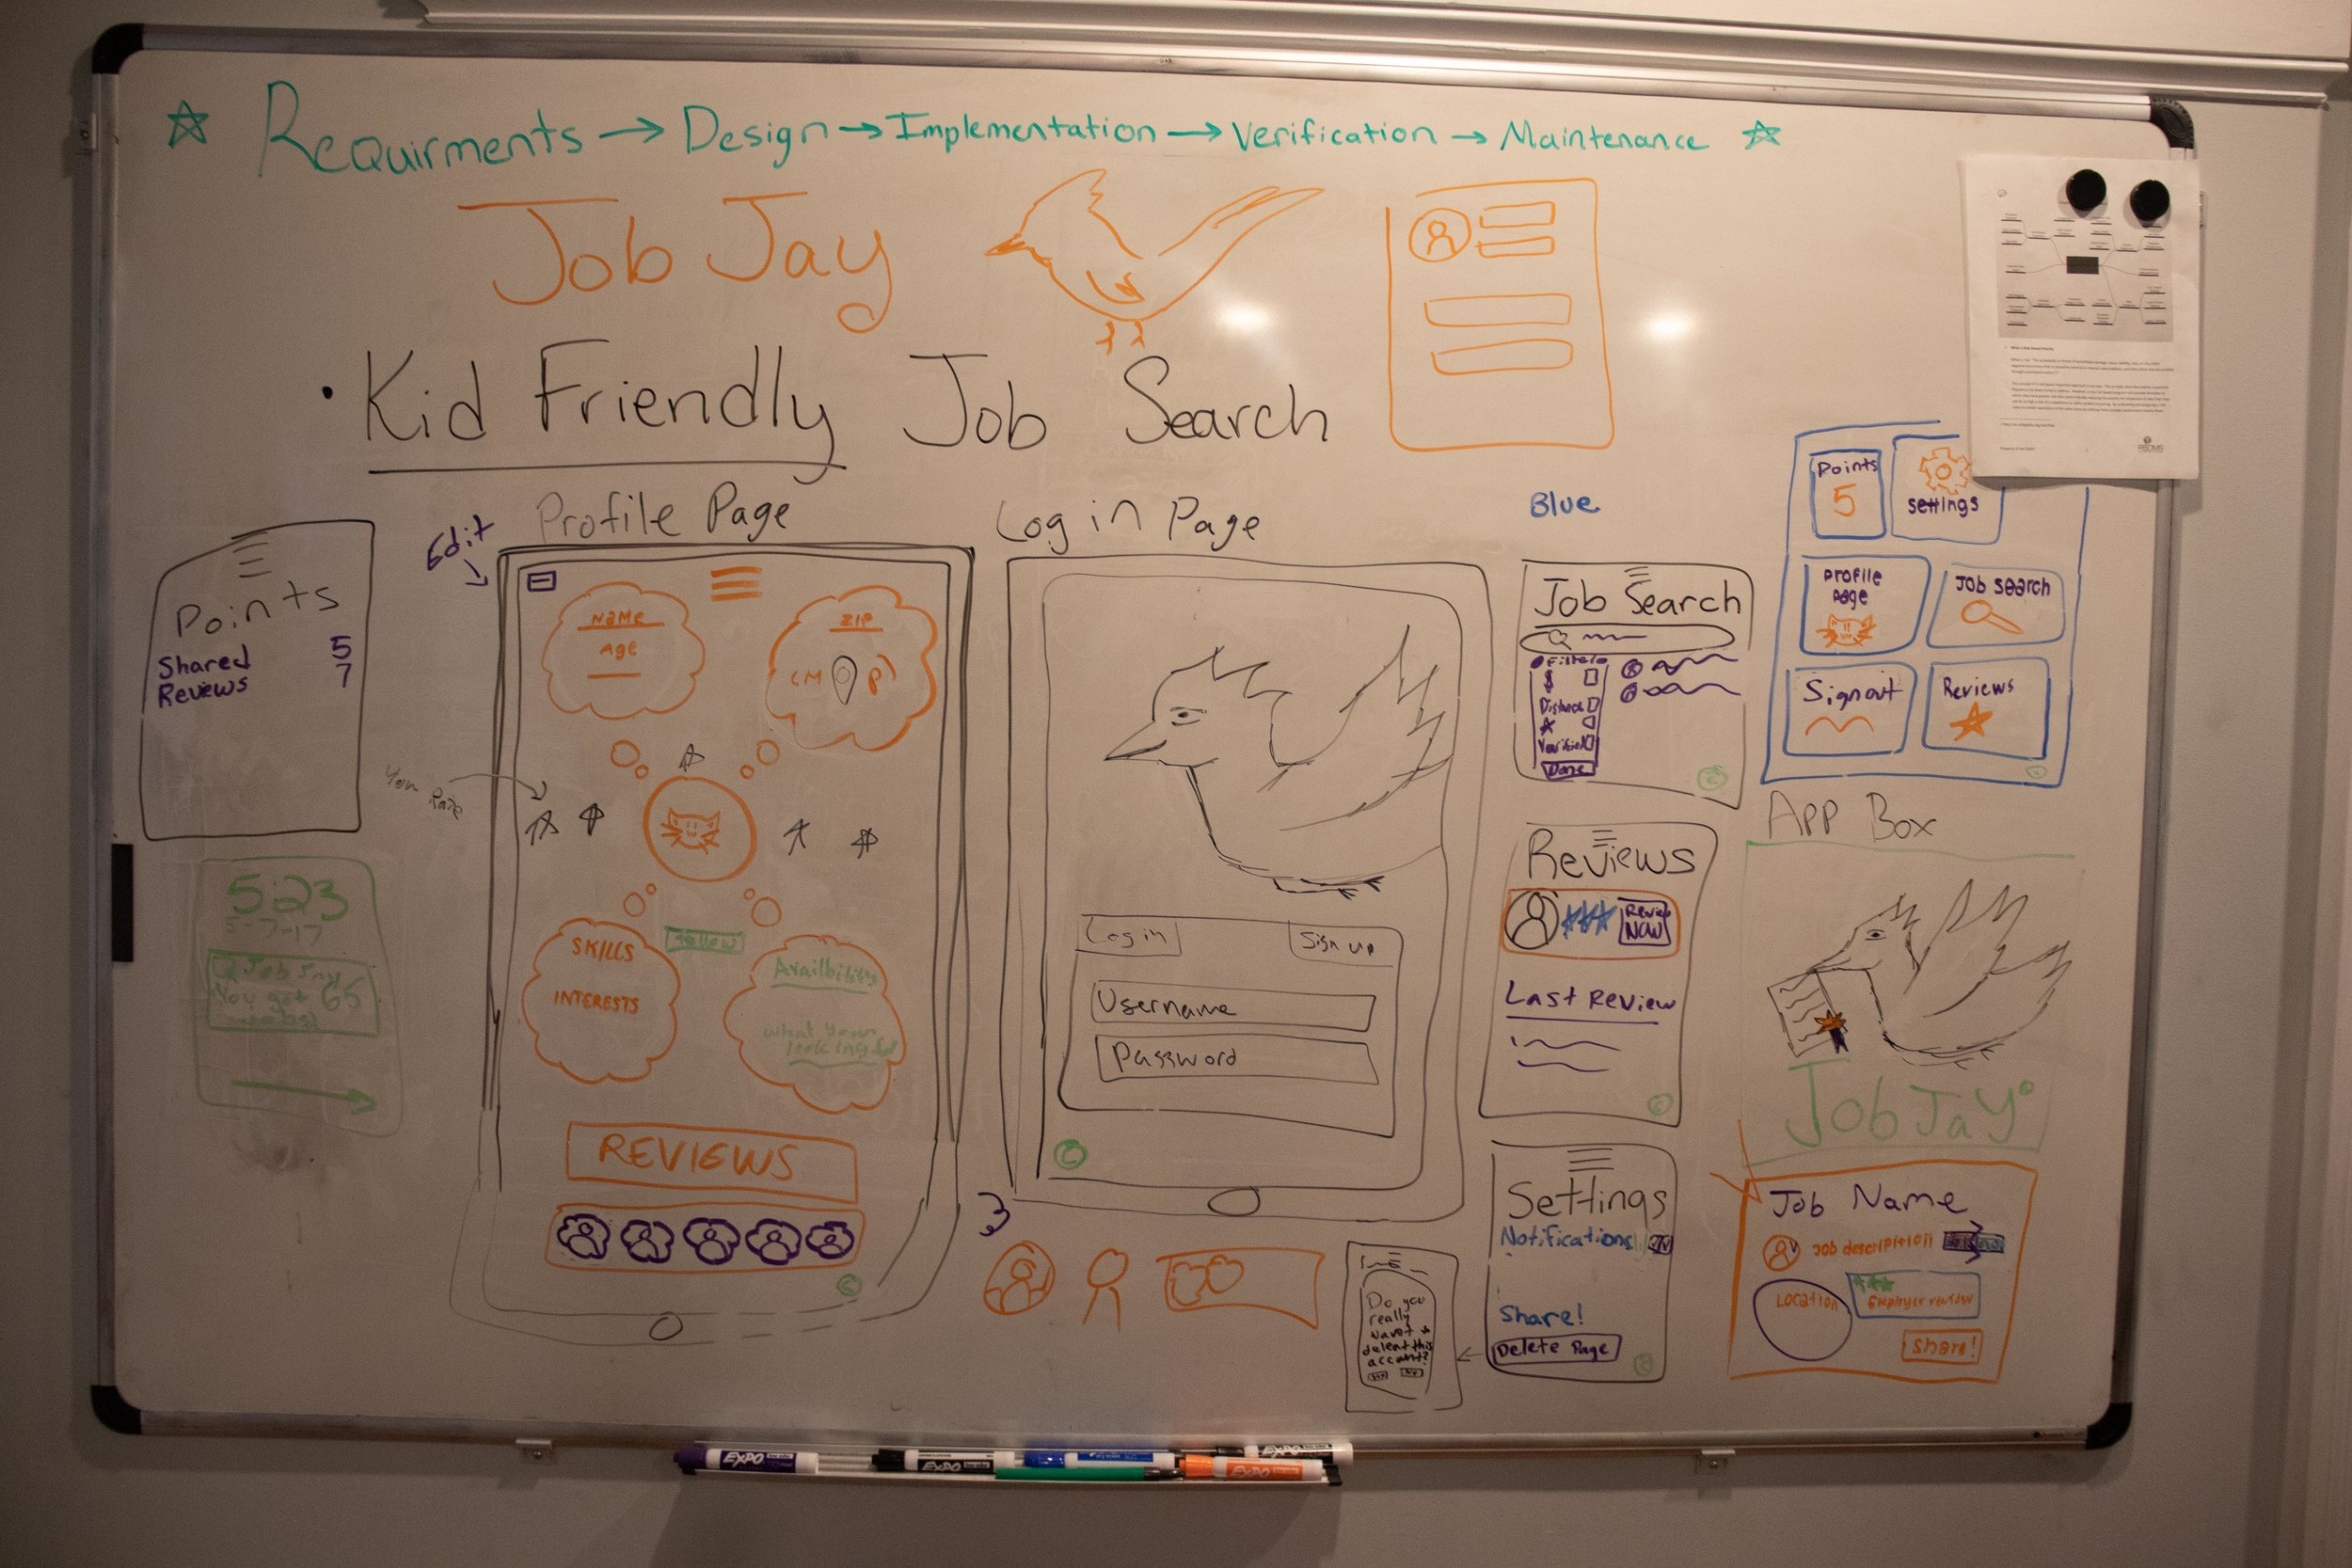 Students designed a kid-friendly job searched app and drew out a user board for both job searchers and employers.